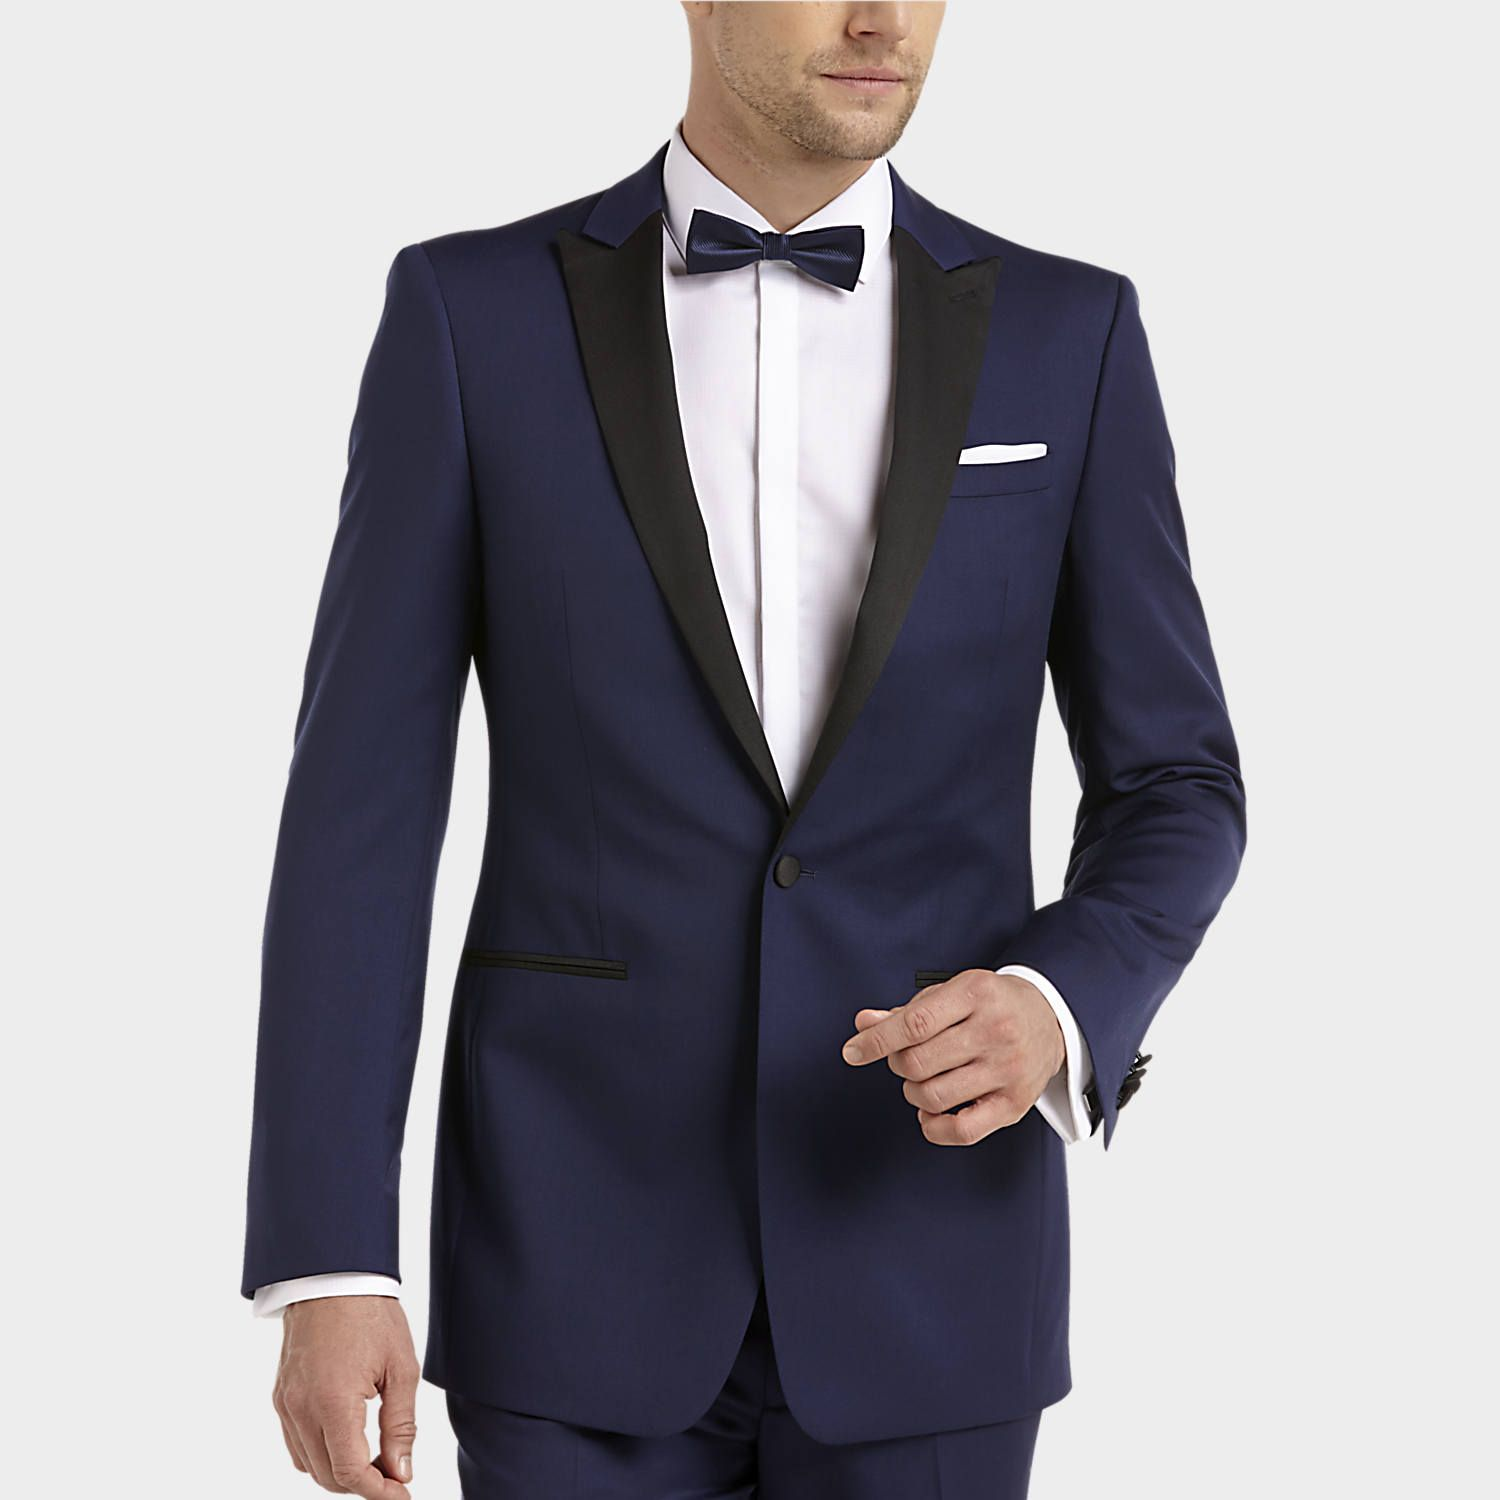 Buy Calvin Klein Blue & Black Extreme Slim Fit Tuxedo and other Navy ...